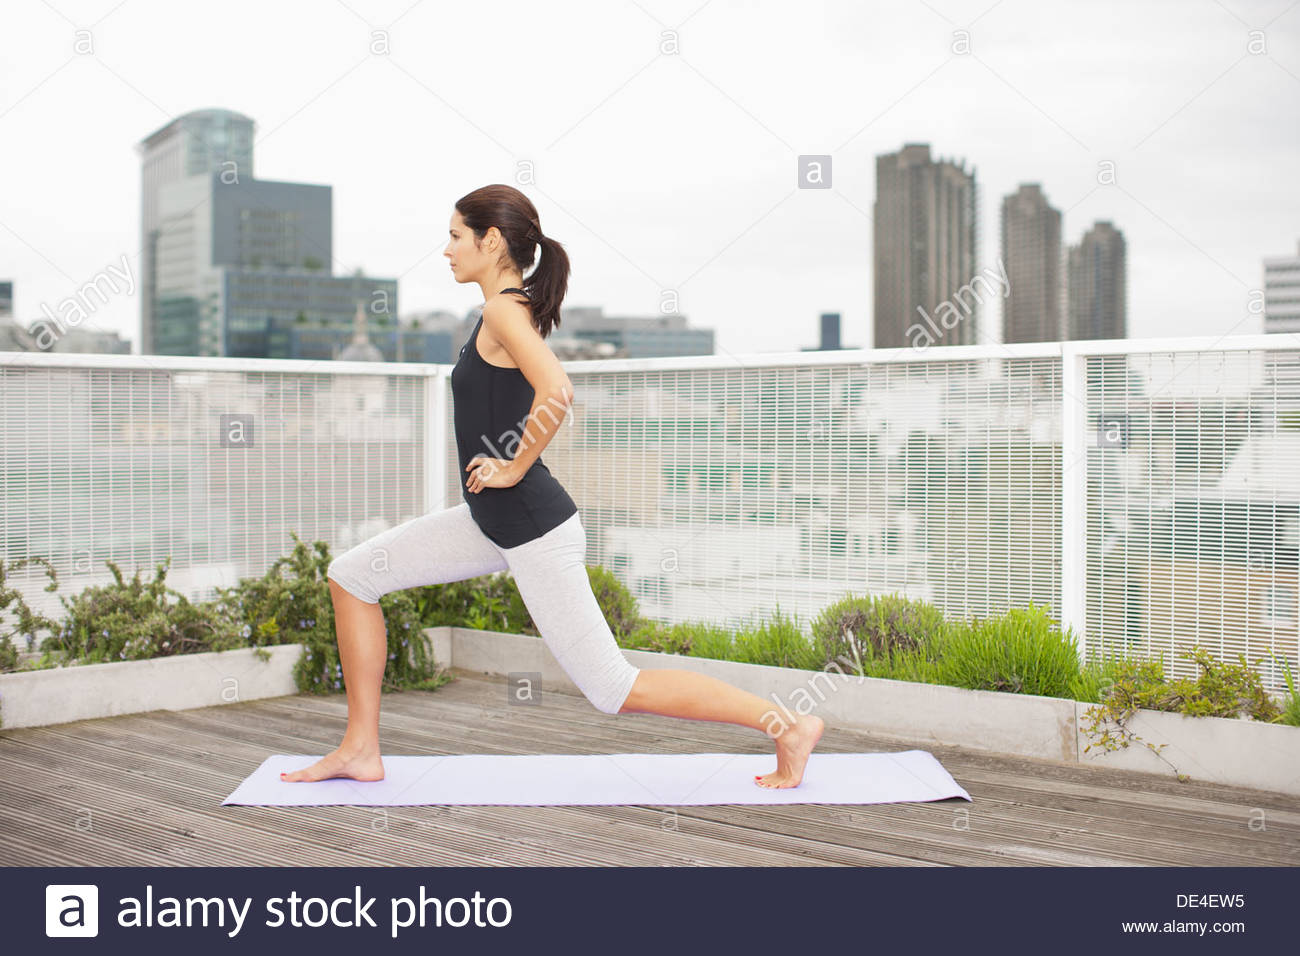 Woman practicing yoga on rooftop deck - Stock Image